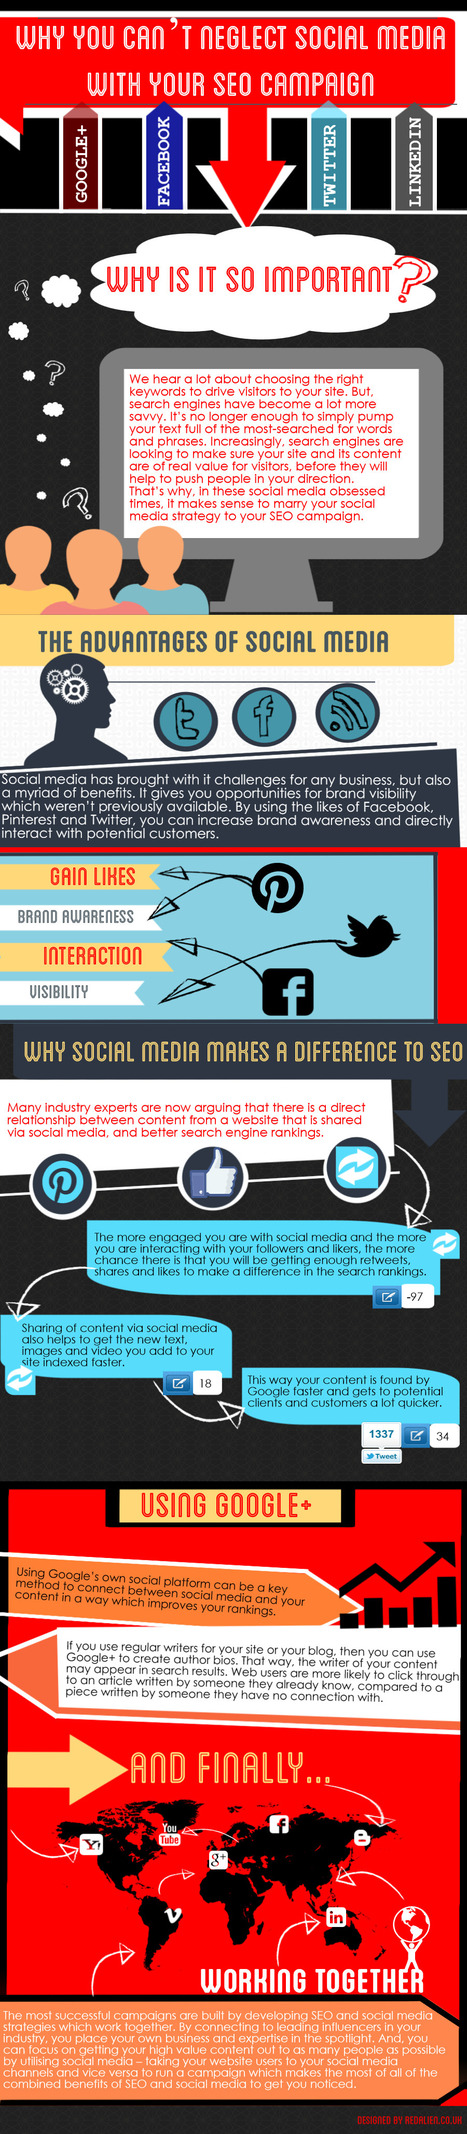 Why you can't neglect social media with SEO campaigns | Social Media Consultant 2012 | Scoop.it